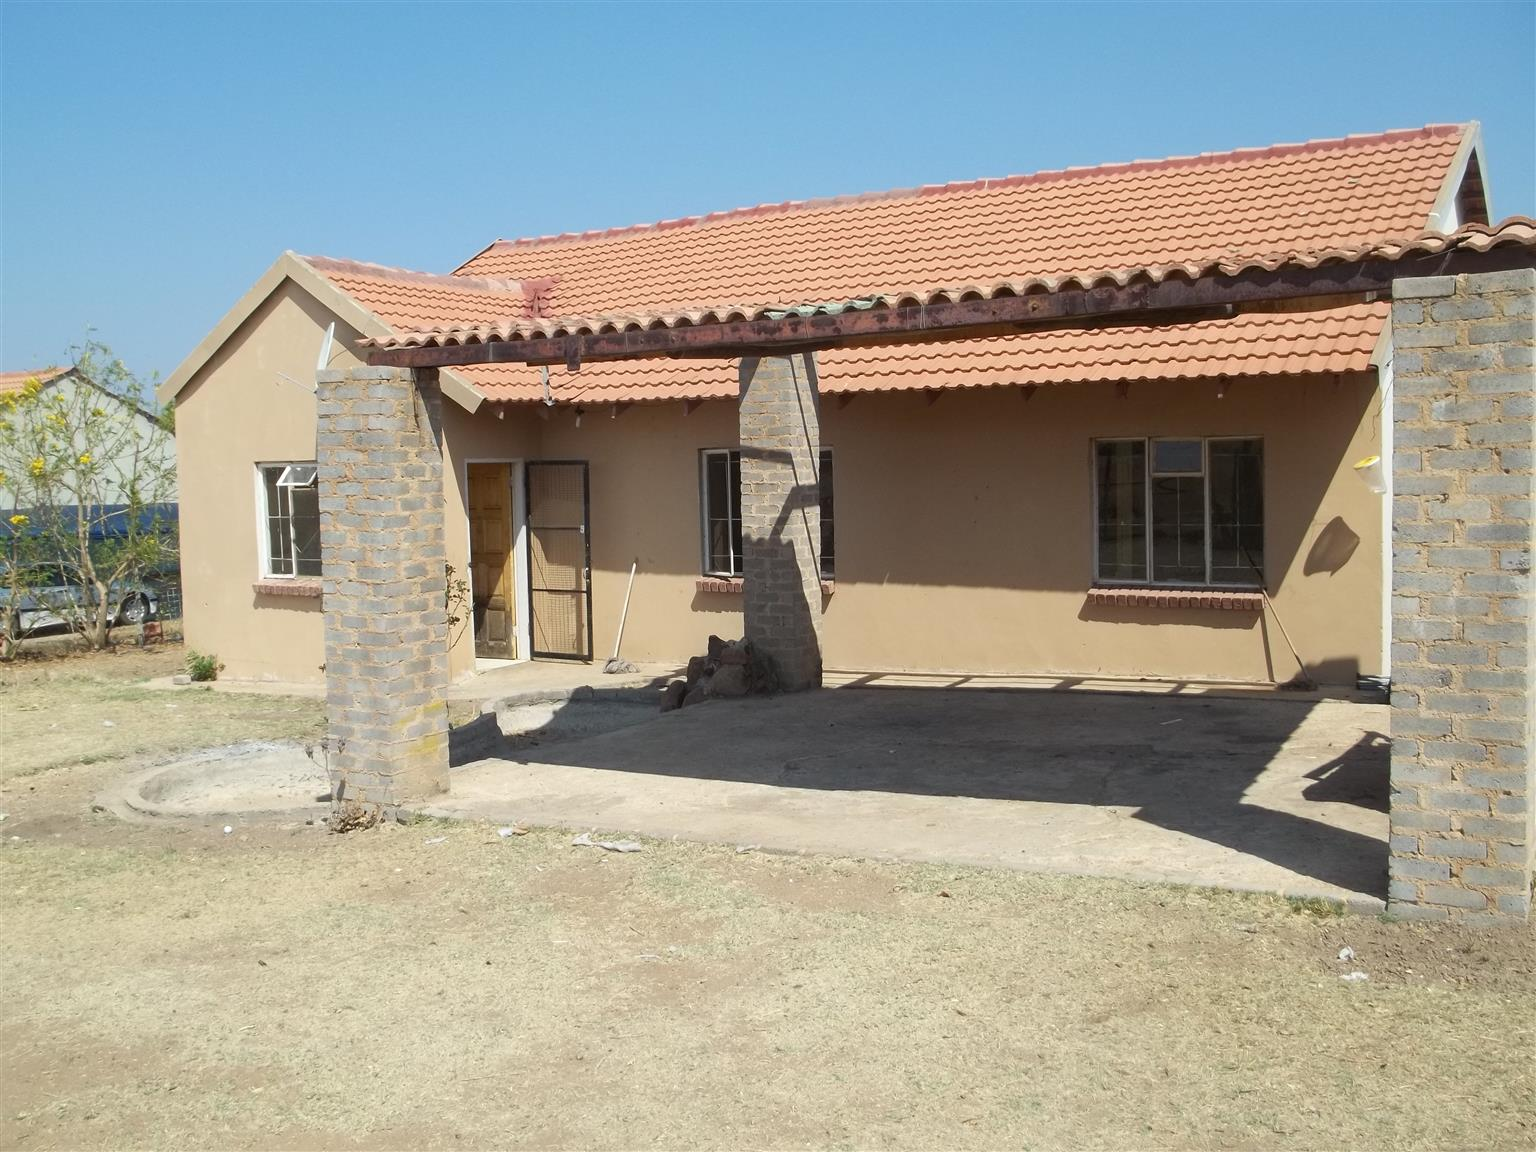 House 3 Bed 2 Bath on small holdings